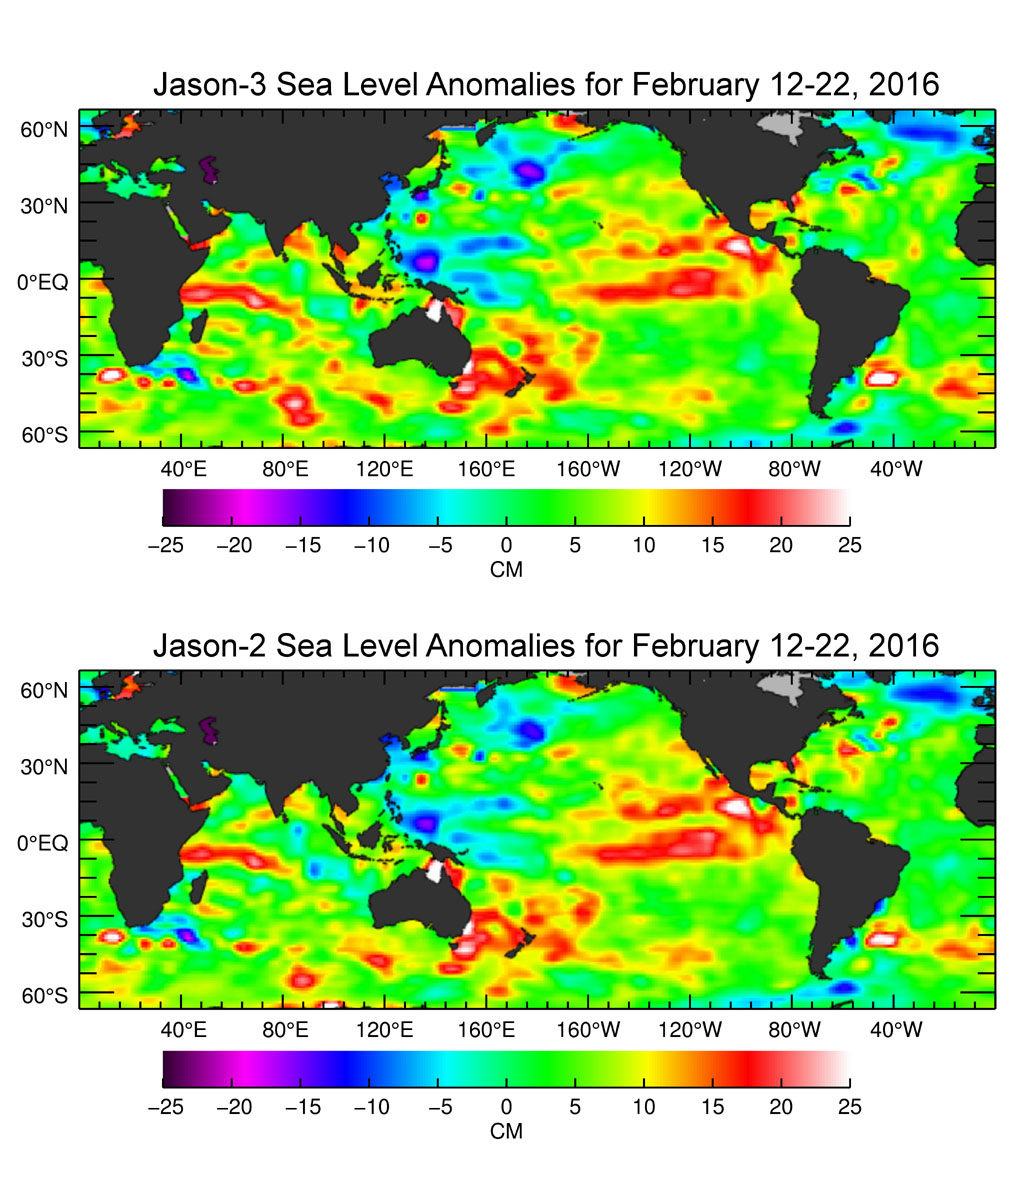 The U.S./European Jason-3 satellite has produced its first map of sea surface height. El Nino is visible as the red blob in the eastern equatorial Pacific.